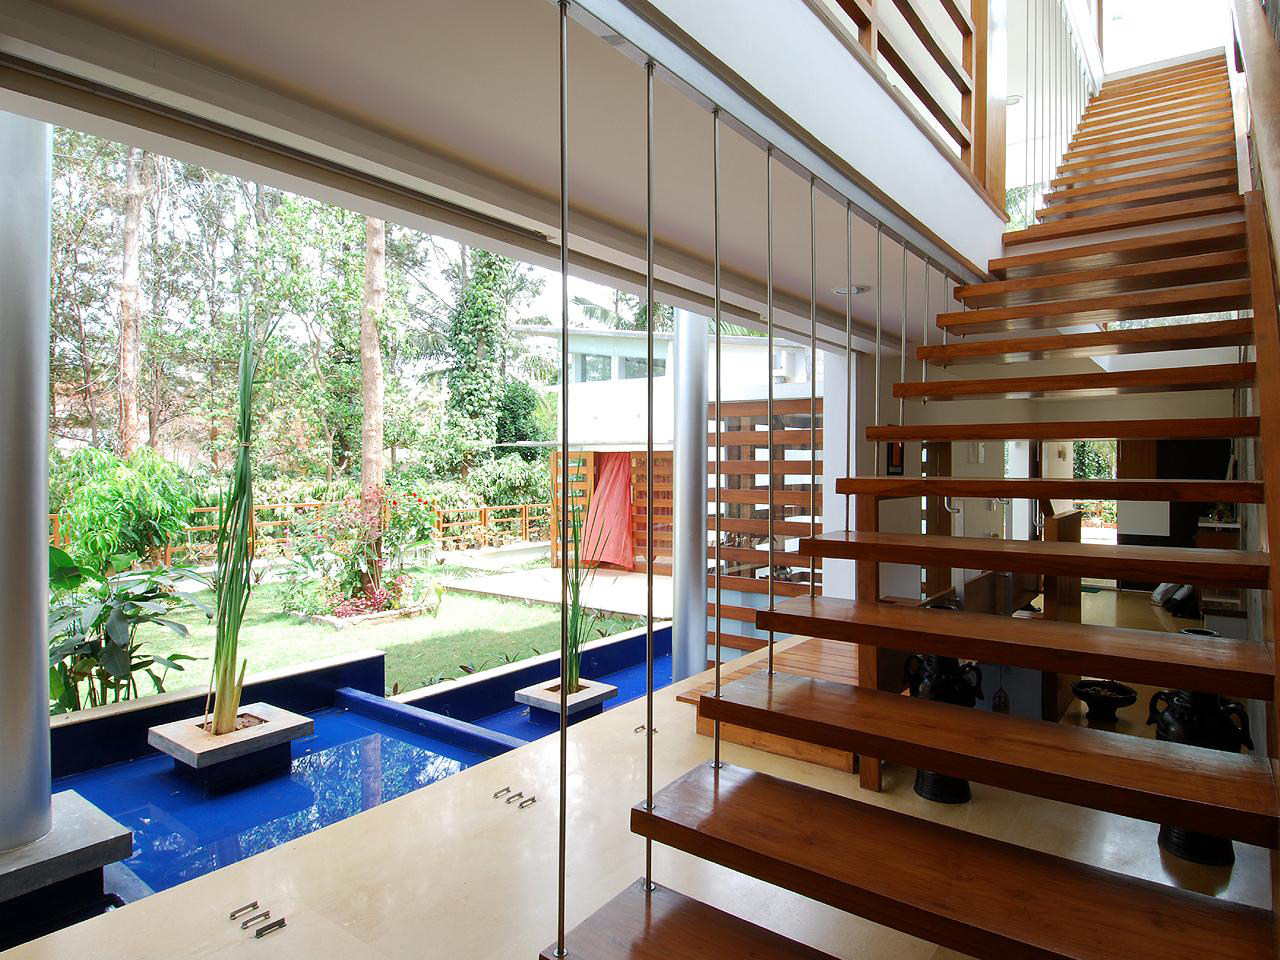 Modern open concept house in bangalore idesignarch interior design architecture interior - Open concept home designs ...